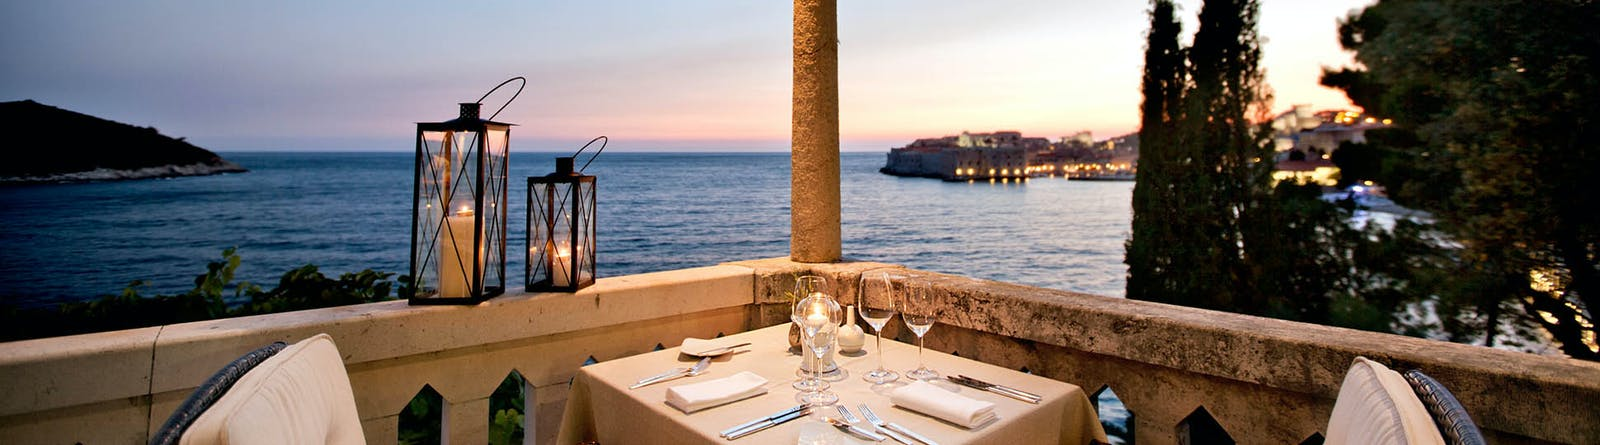 Dining with Beautiful View, Villa Orsula, Dubrovnik